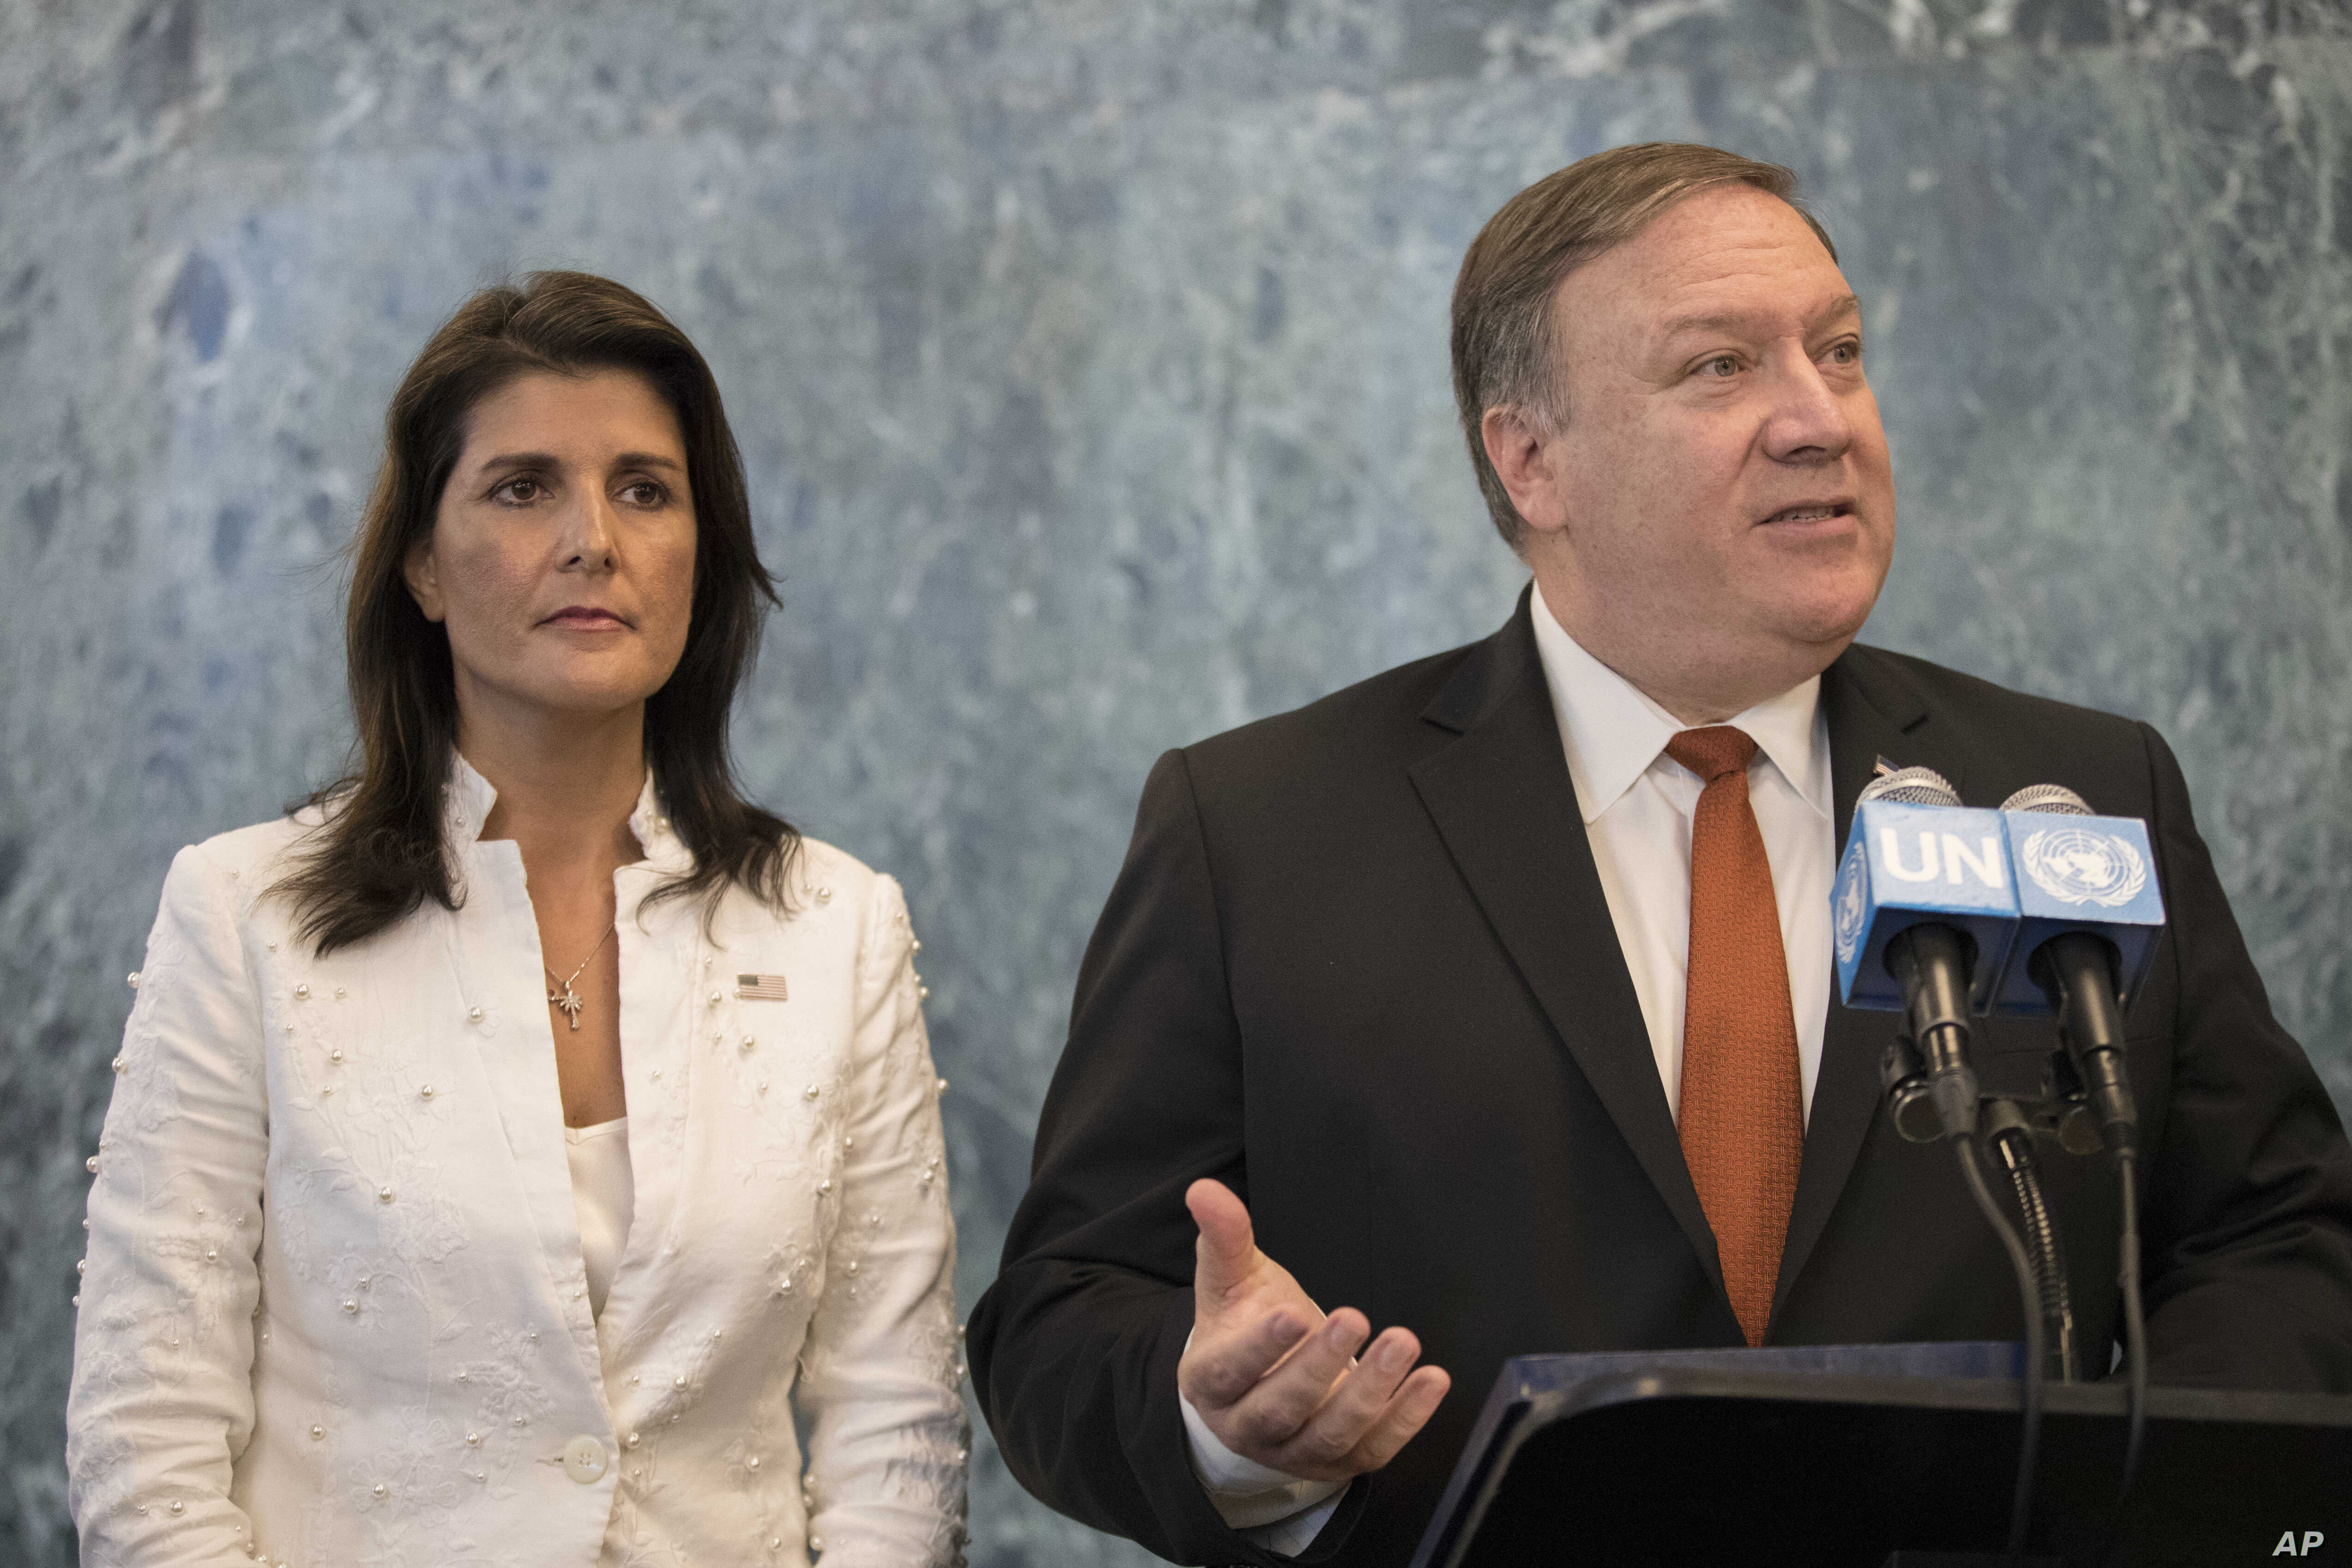 U. S. Secretary of State Mike Pompeo, with U.S. Ambassador to the United Nations Nikki Haley, speaks to reporters at U.N. headquarters, July 20, 2018.